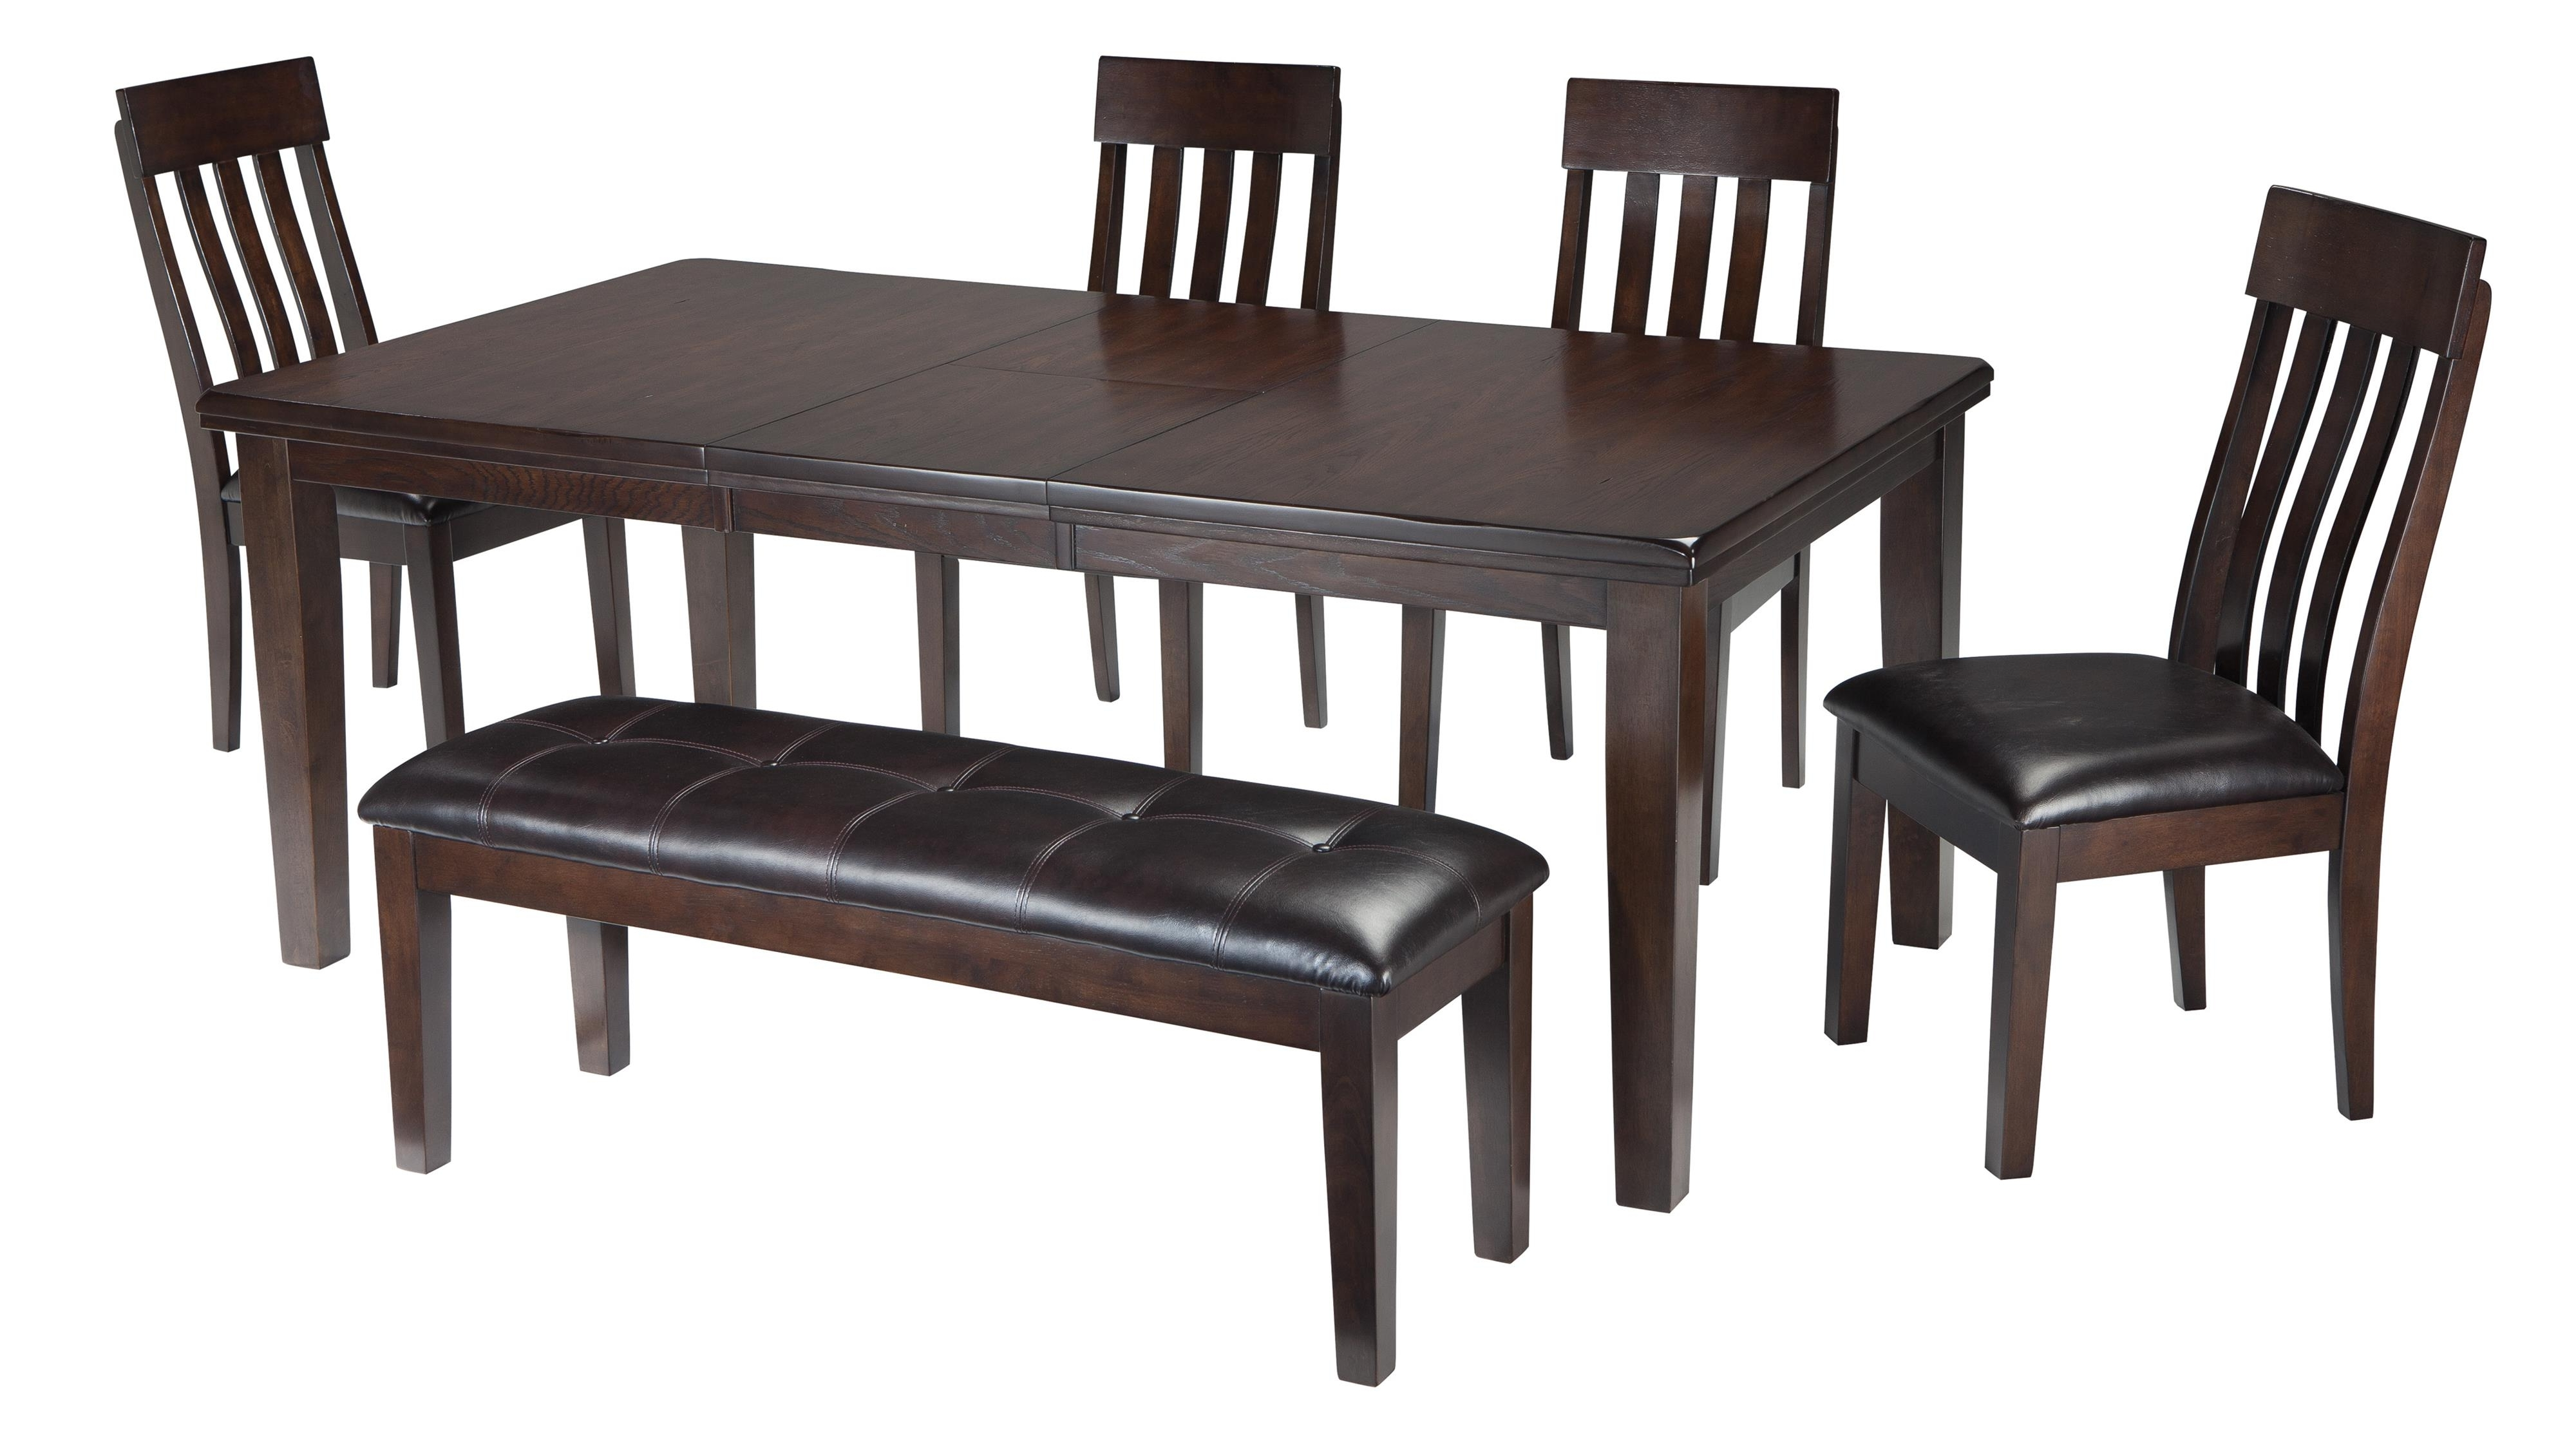 Well Liked Jaxon 5 Piece Extension Round Dining Sets With Wood Chairs In Signature Designashley Haddigan 6 Piece Rectangular Dining Room (View 23 of 25)